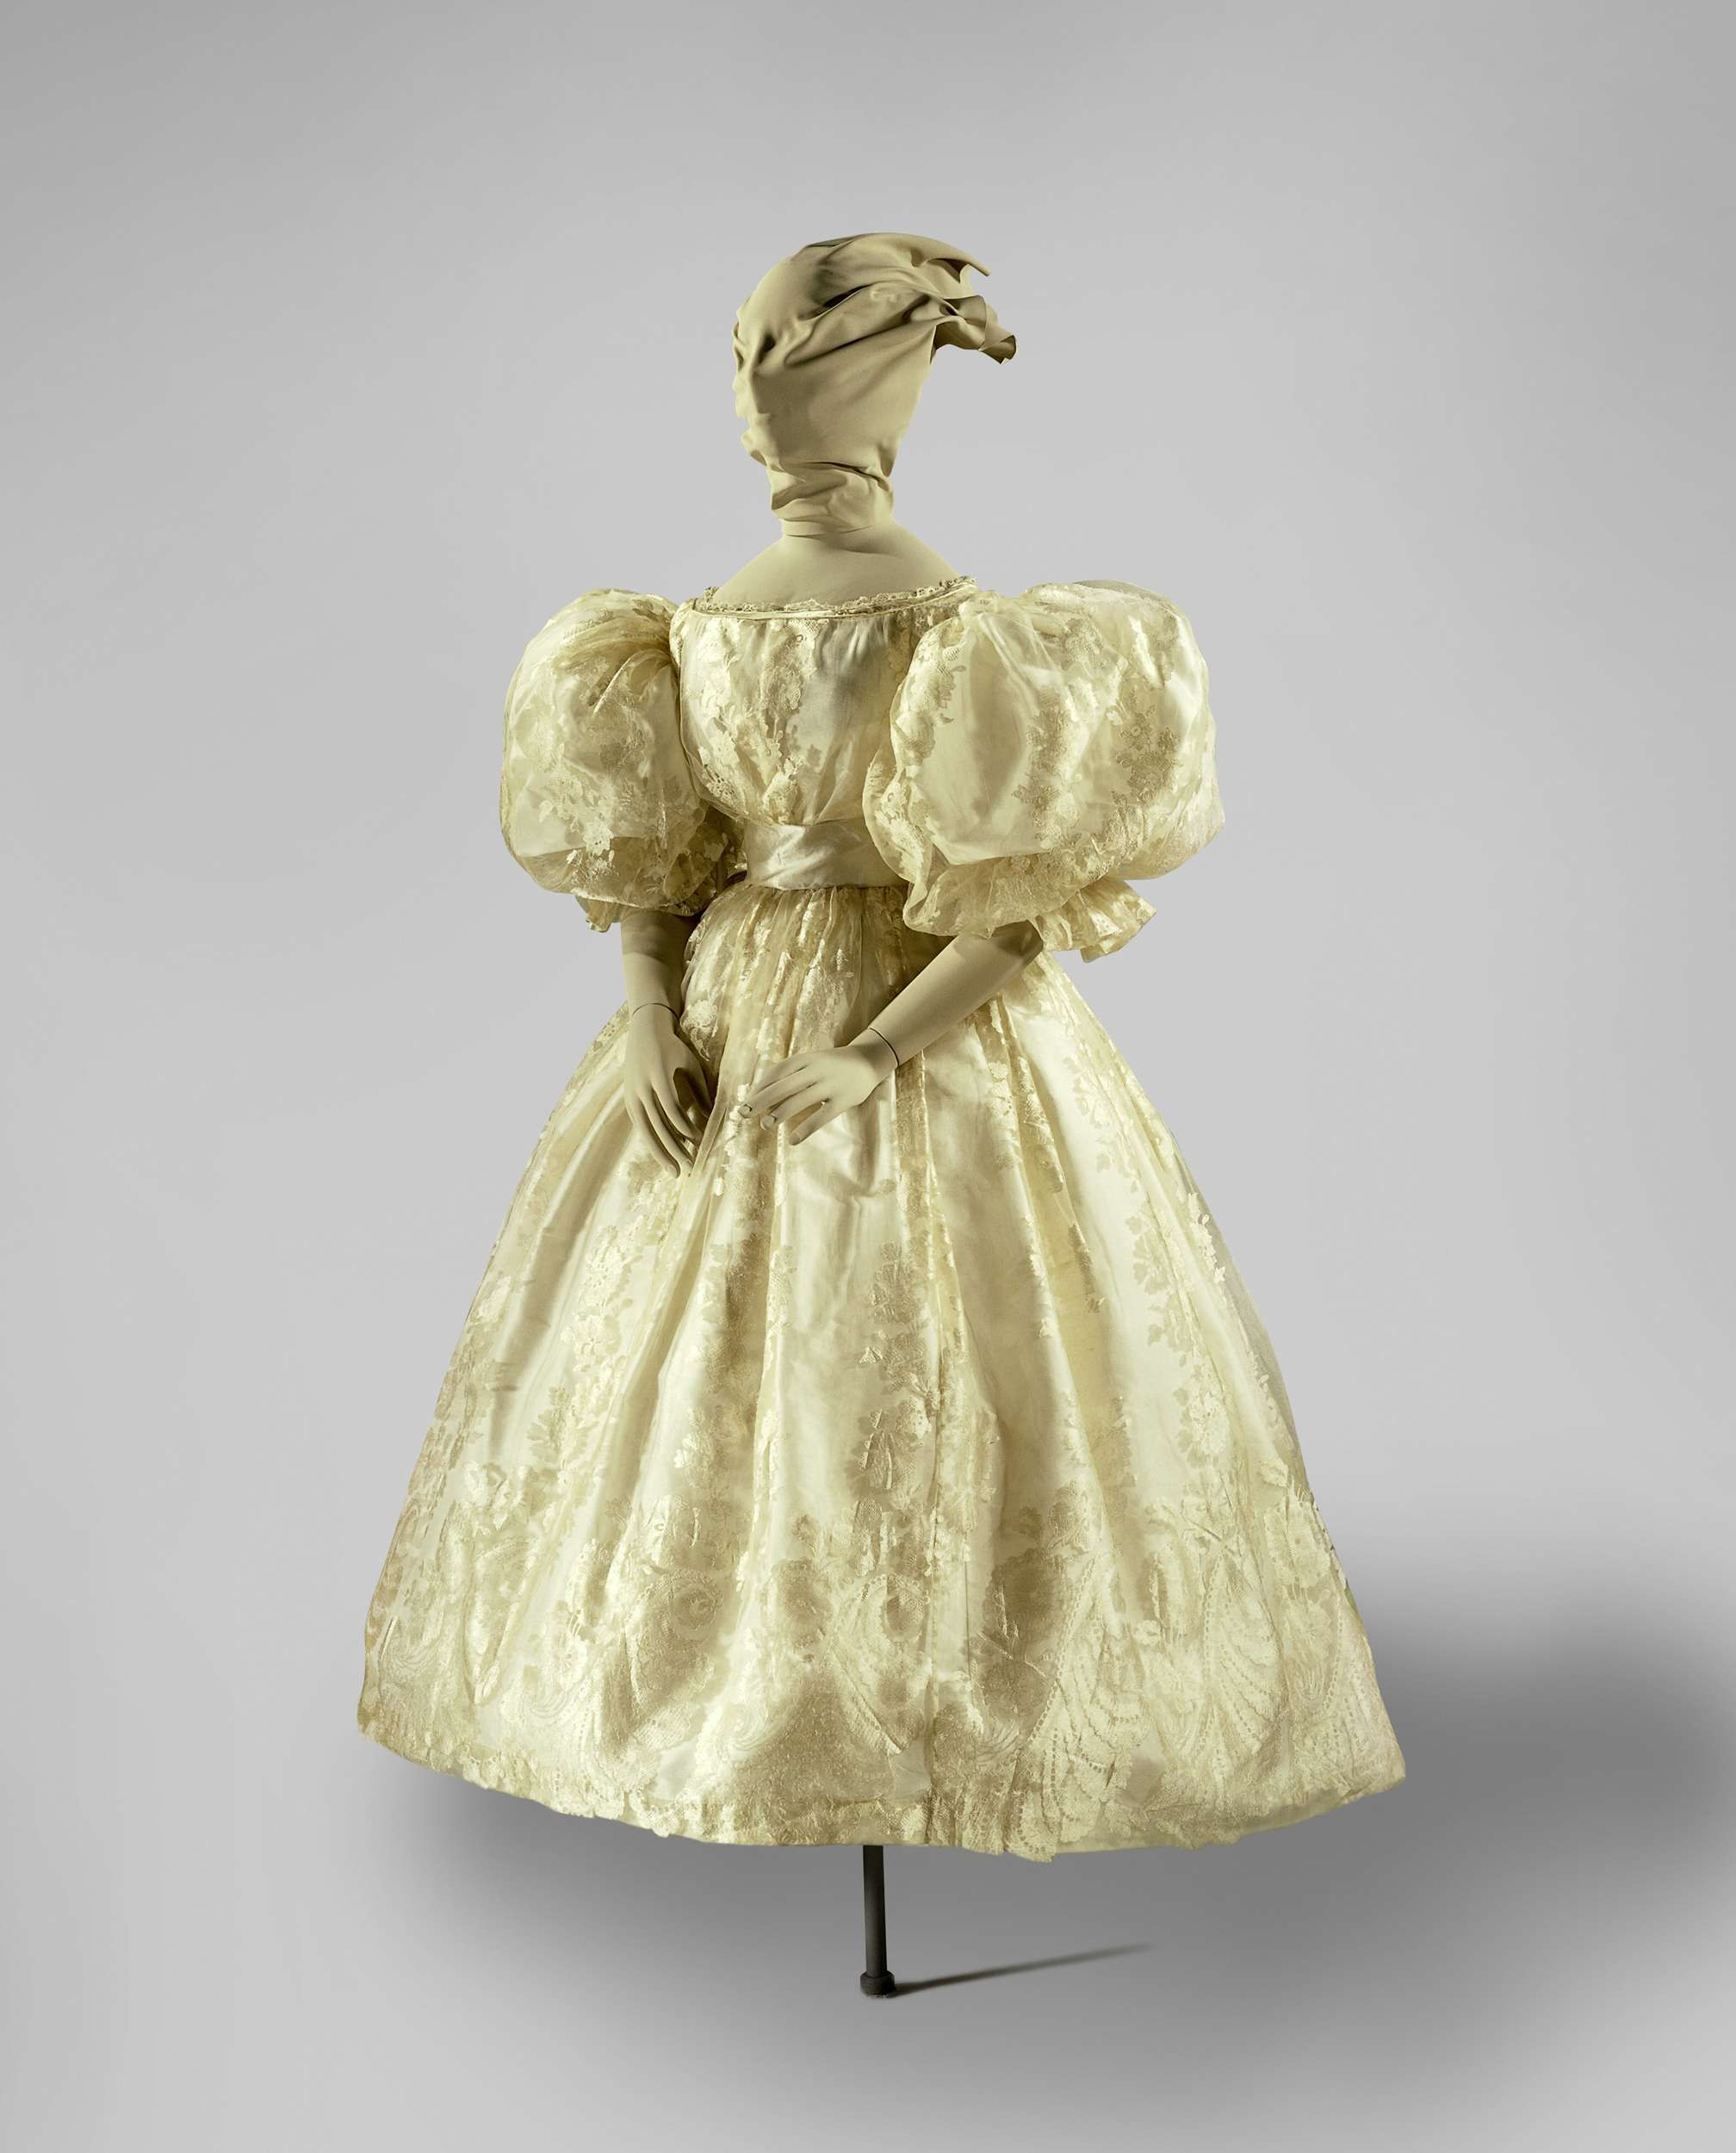 Wedding dress with extremely wide, puffed sleeves, Anonymous, in or before 1835. In 1835 Baroness Nine van Slingelandt married Jonkheer Pieter Teding van Berkhout in Amsterdam. Unlike many of her wealthy contemporaries she did not wear a lace dress, but rather a wedding gown made of an intricately woven silk fabric that makes the illusion of lace. The fabric consists of a tulle ground to which extra threads were added to create the floral pattern.